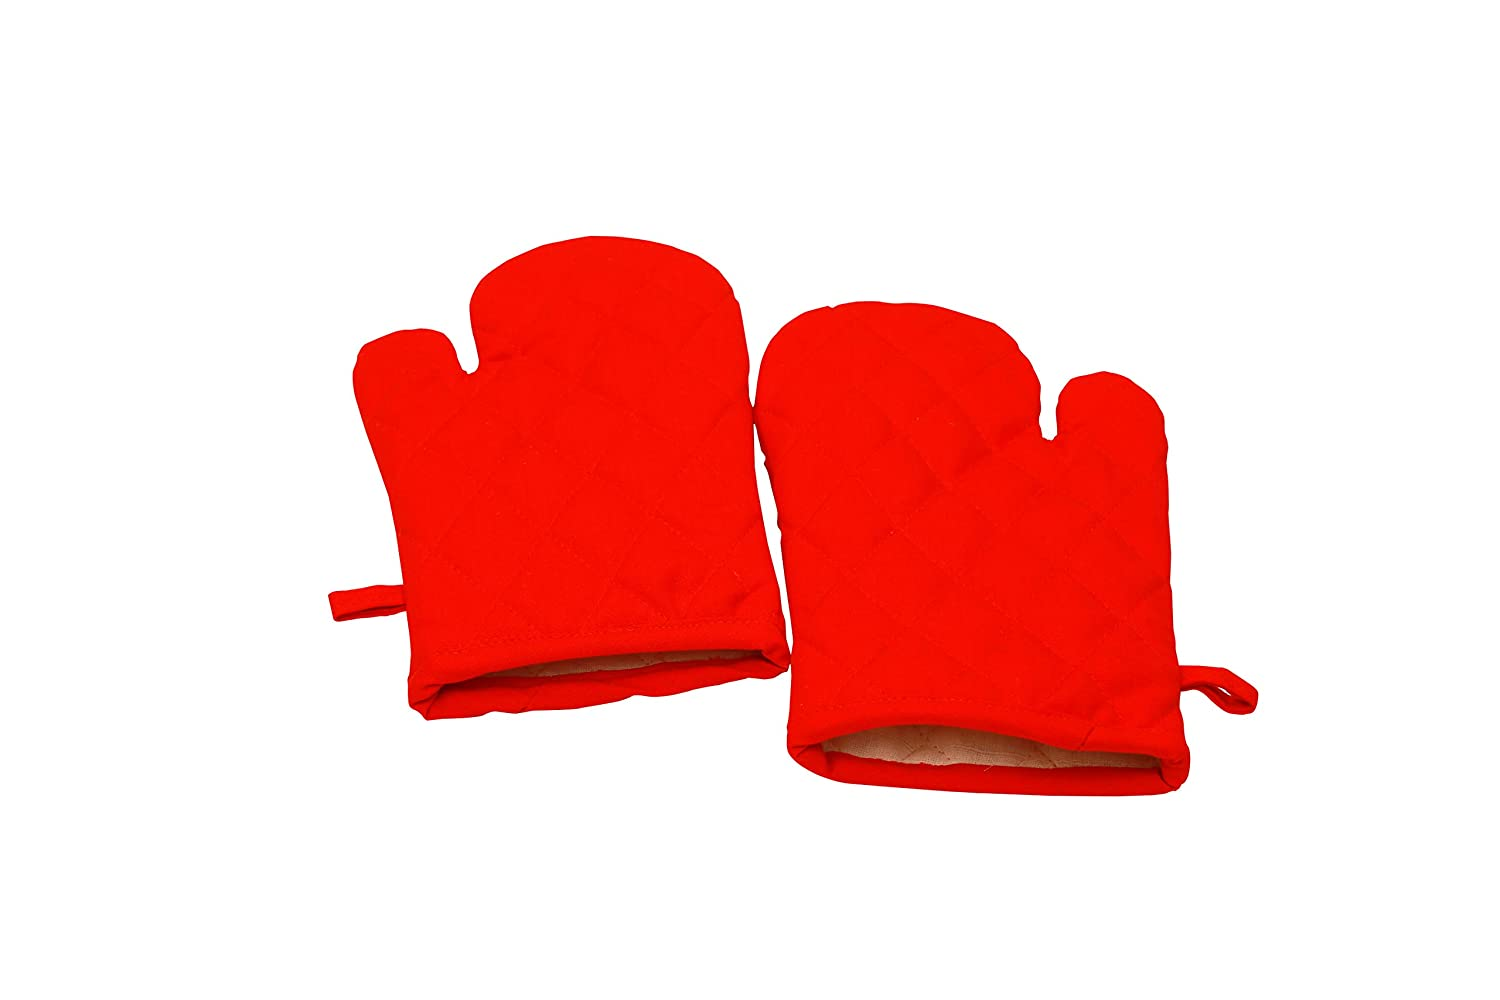 Oven Mitts, Set Of 2, 100% Cotton Of Size 7 X 12 Inches, Premium Heat Resistant Kitchen Gloves, Cotton Fabric Quilted, Red, Heat Resistant For Everyday Kitchen Cooking And Baking.